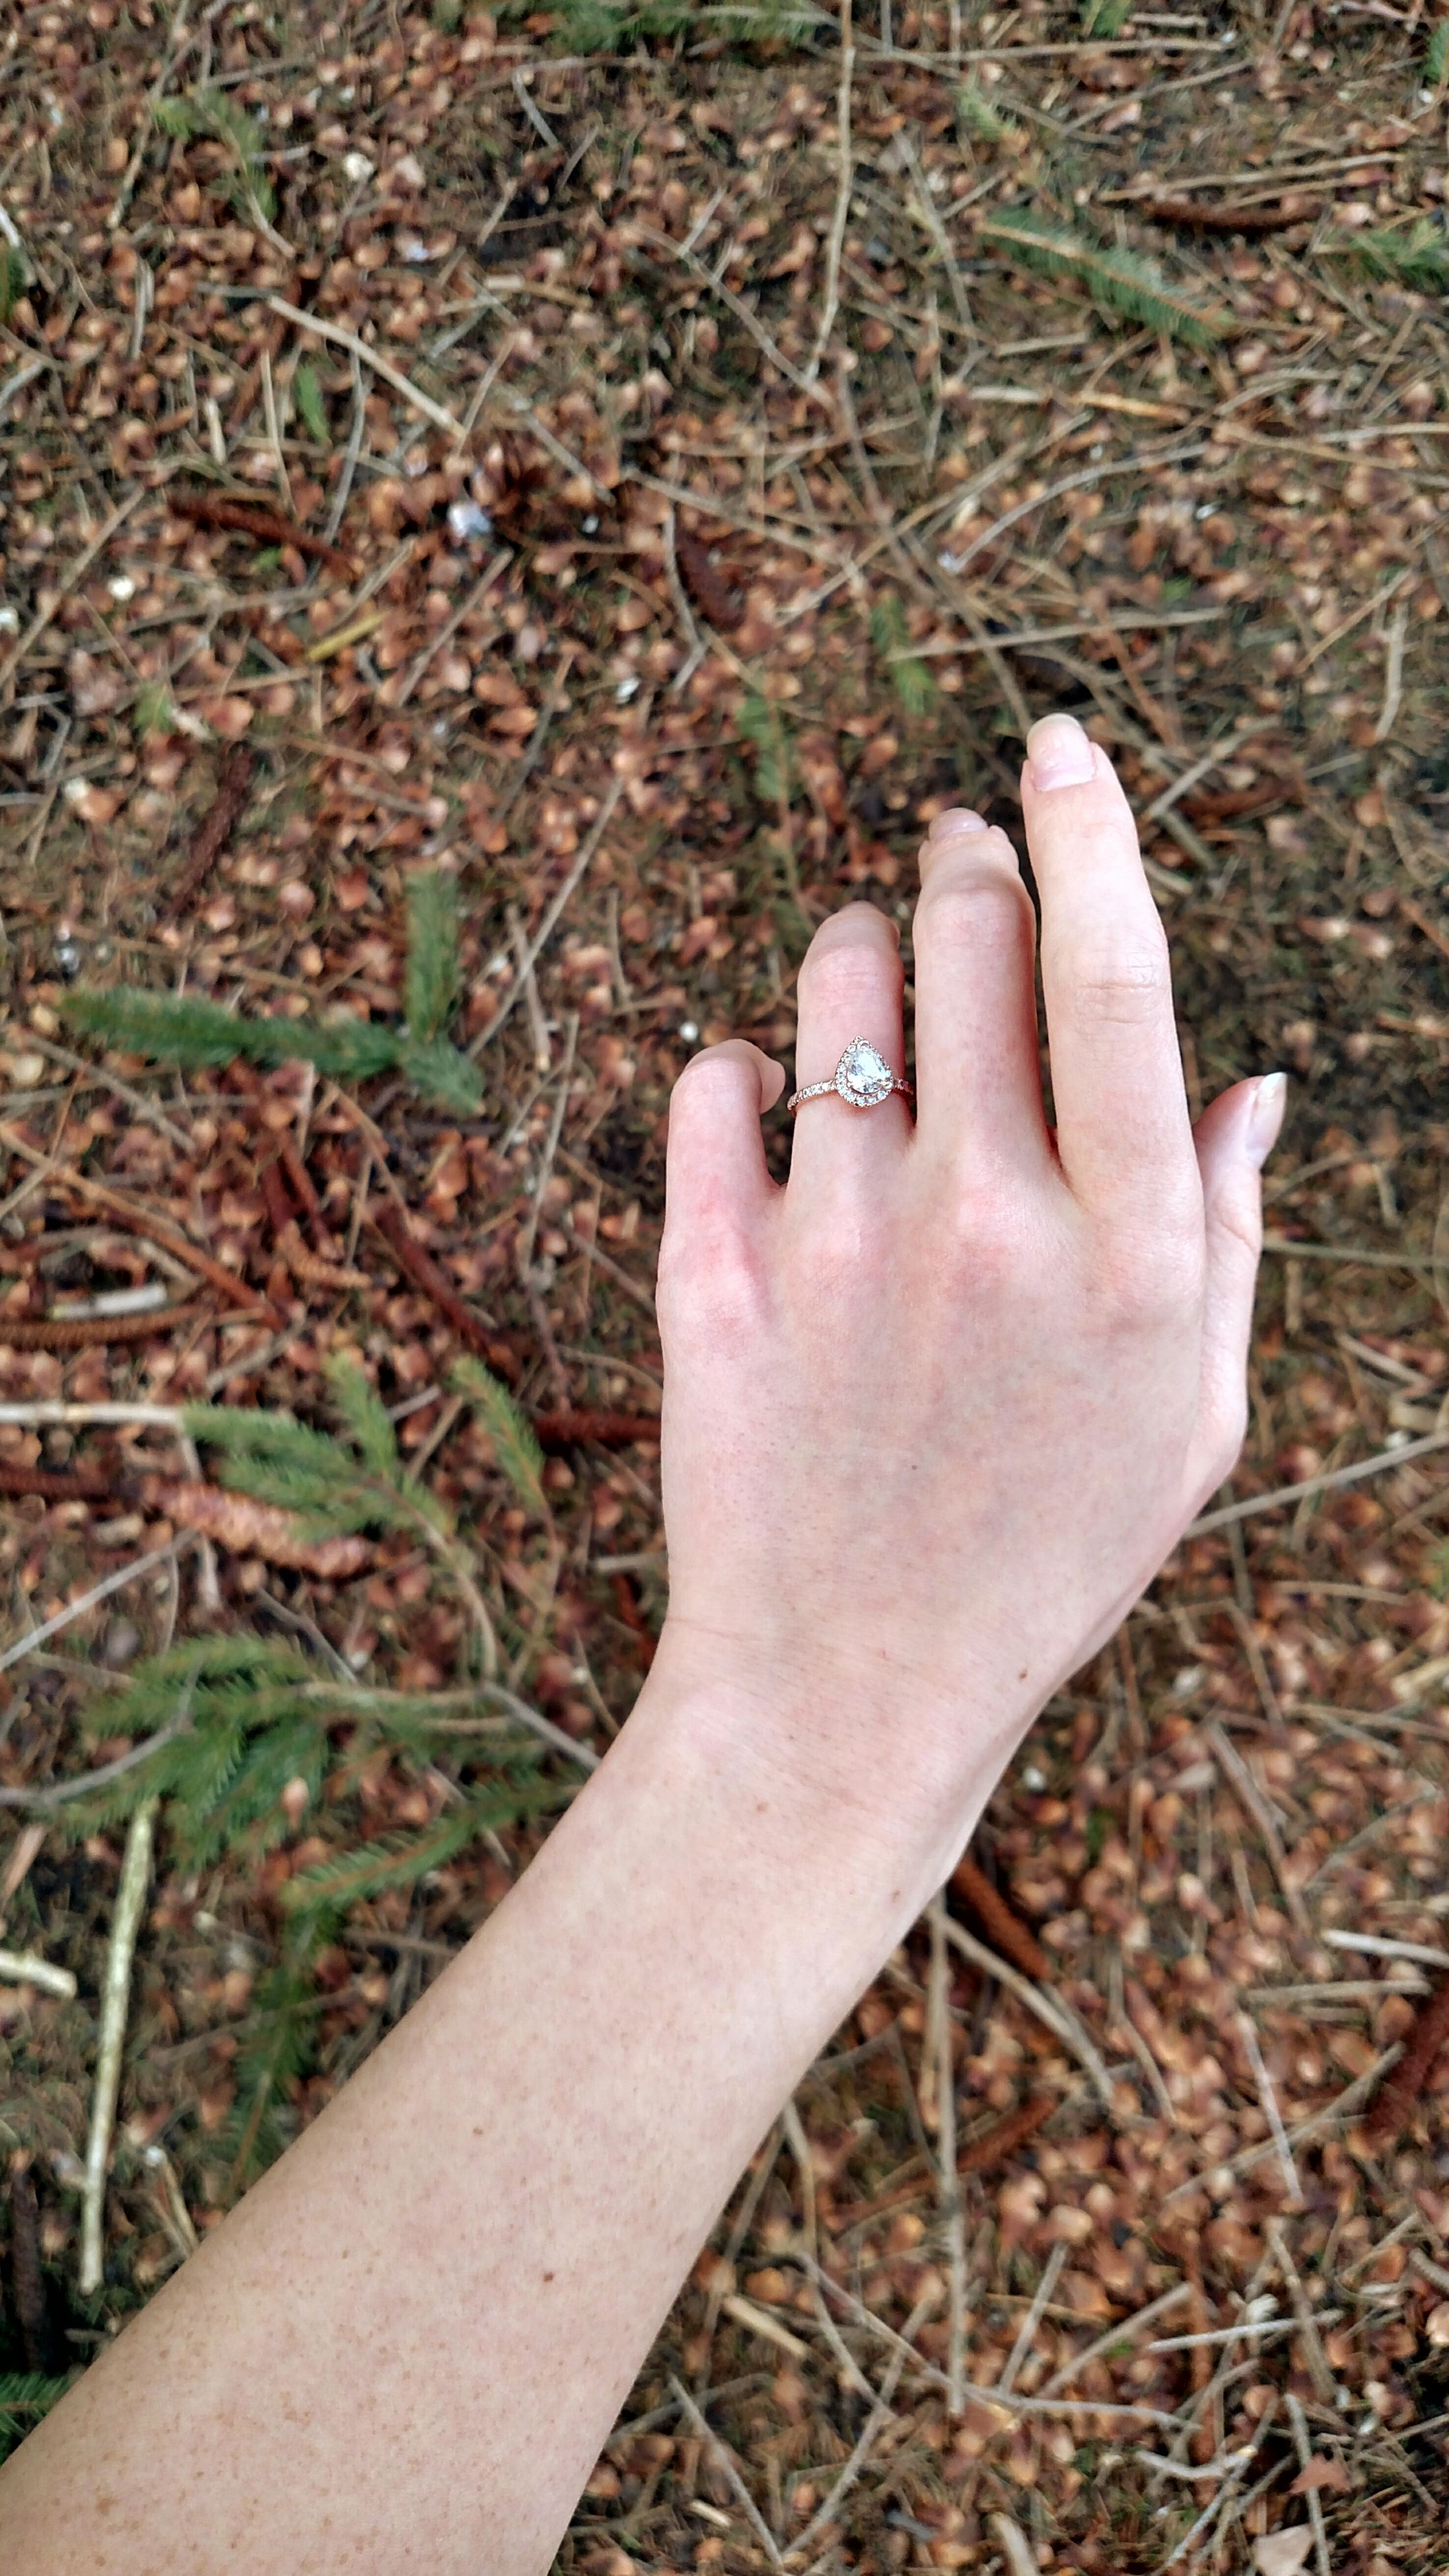 person, part of, high angle view, close-up, cropped, field, human finger, grass, dry, day, holding, outdoors, nature, focus on foreground, unrecognizable person, personal perspective, sunlight